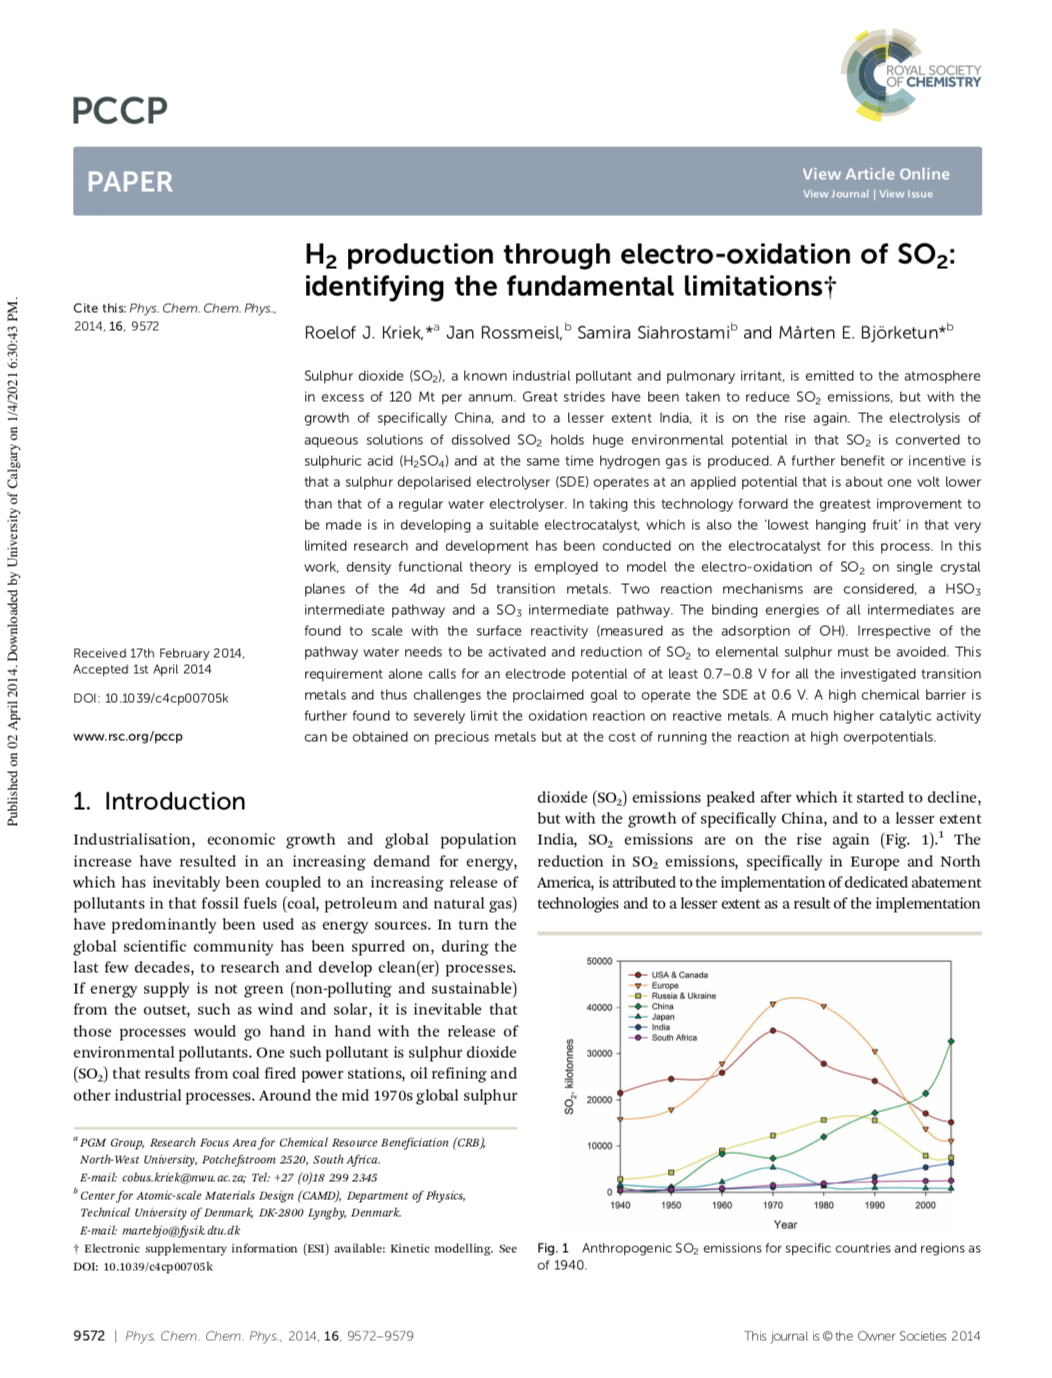 H2 production through electro-oxidation of SO2: identifying the fundamental limitations